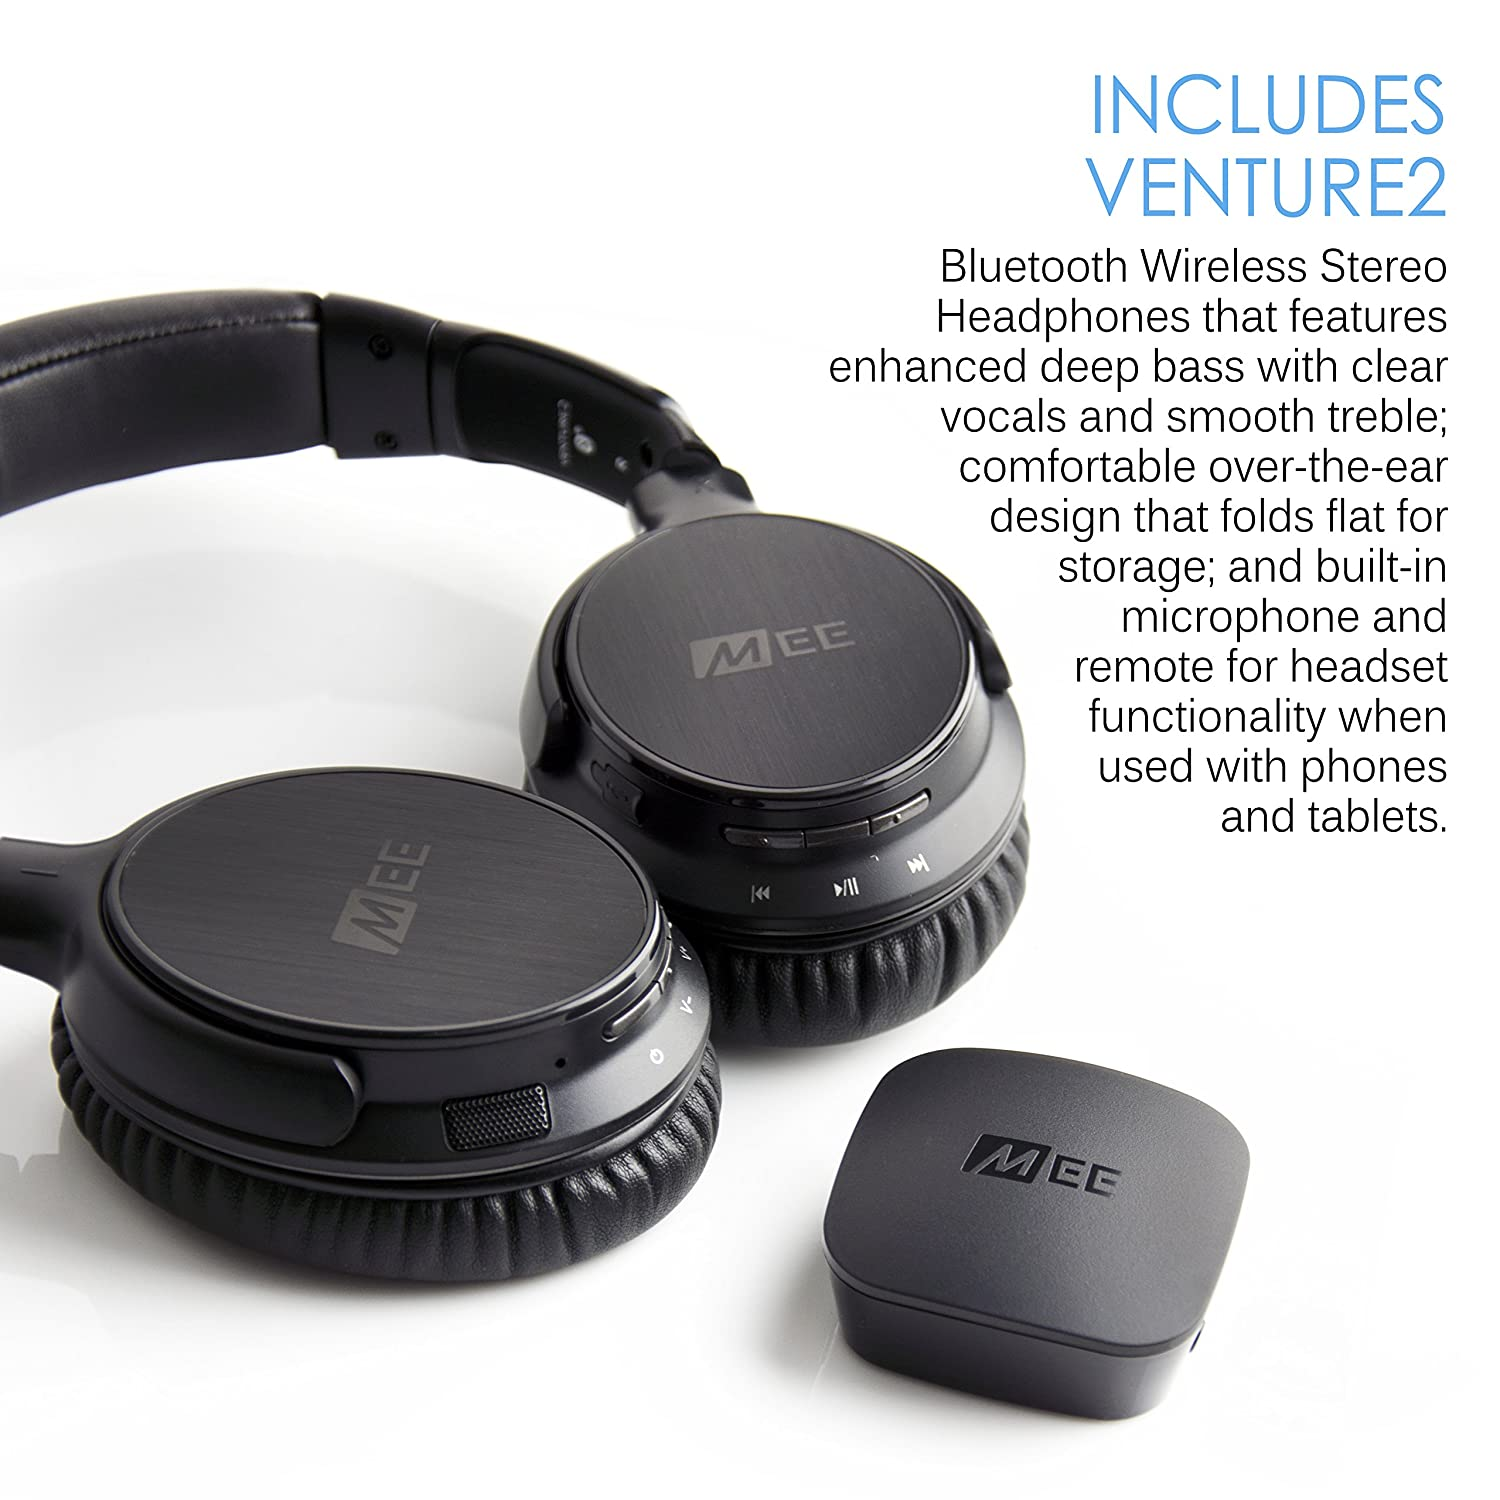 4f4dac2cc32 MEE audio Connect Bluetooth Wireless Headphone System for TV - Includes Bluetooth  Wireless Audio Transmitter and Headphones: Amazon.ca: Cell Phones & ...